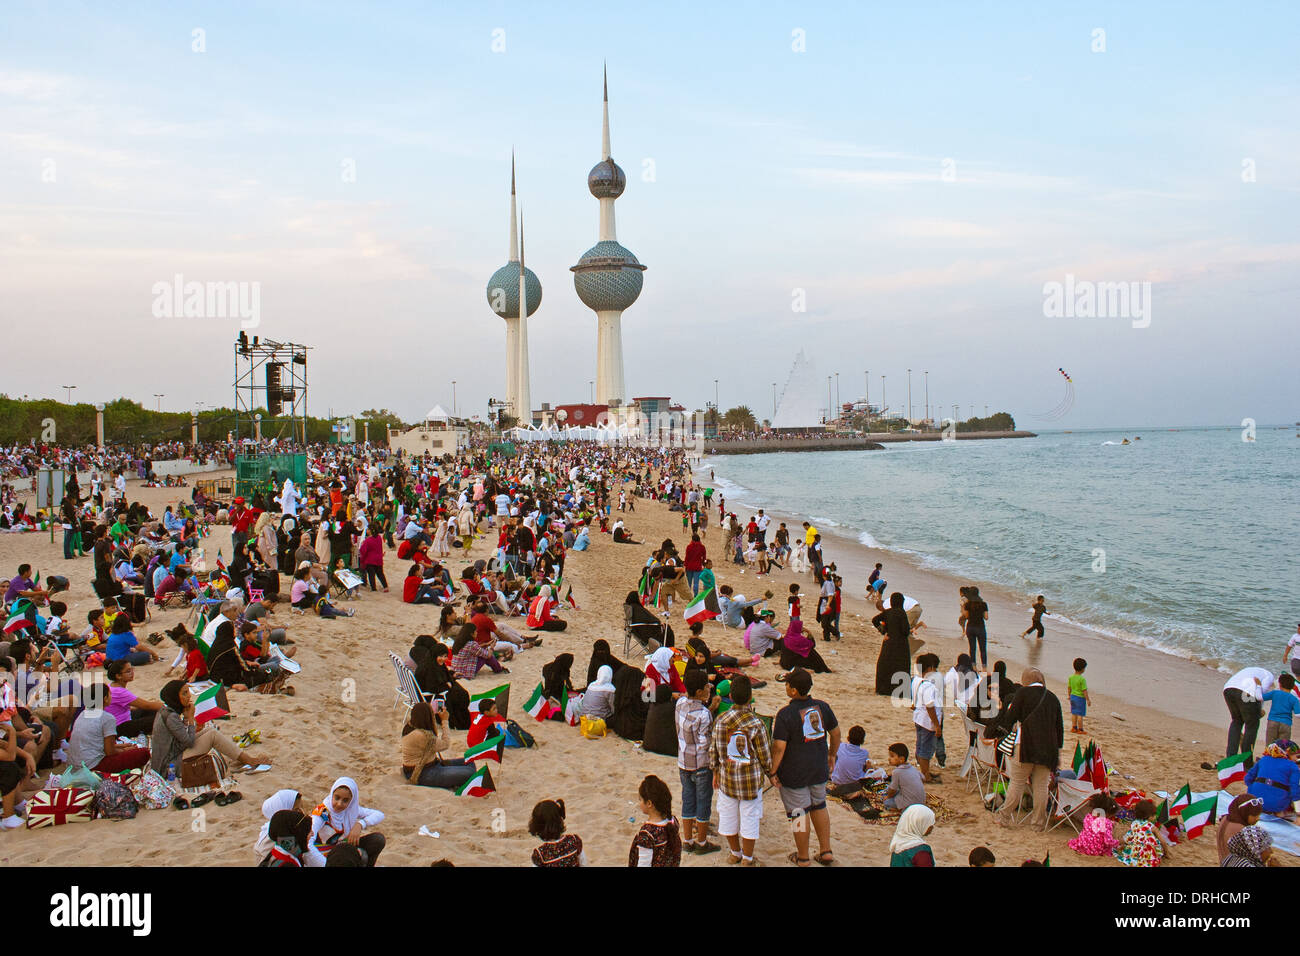 kuwaiti people celebrates constitution anniversary near Kuwait towers shore - Stock Image